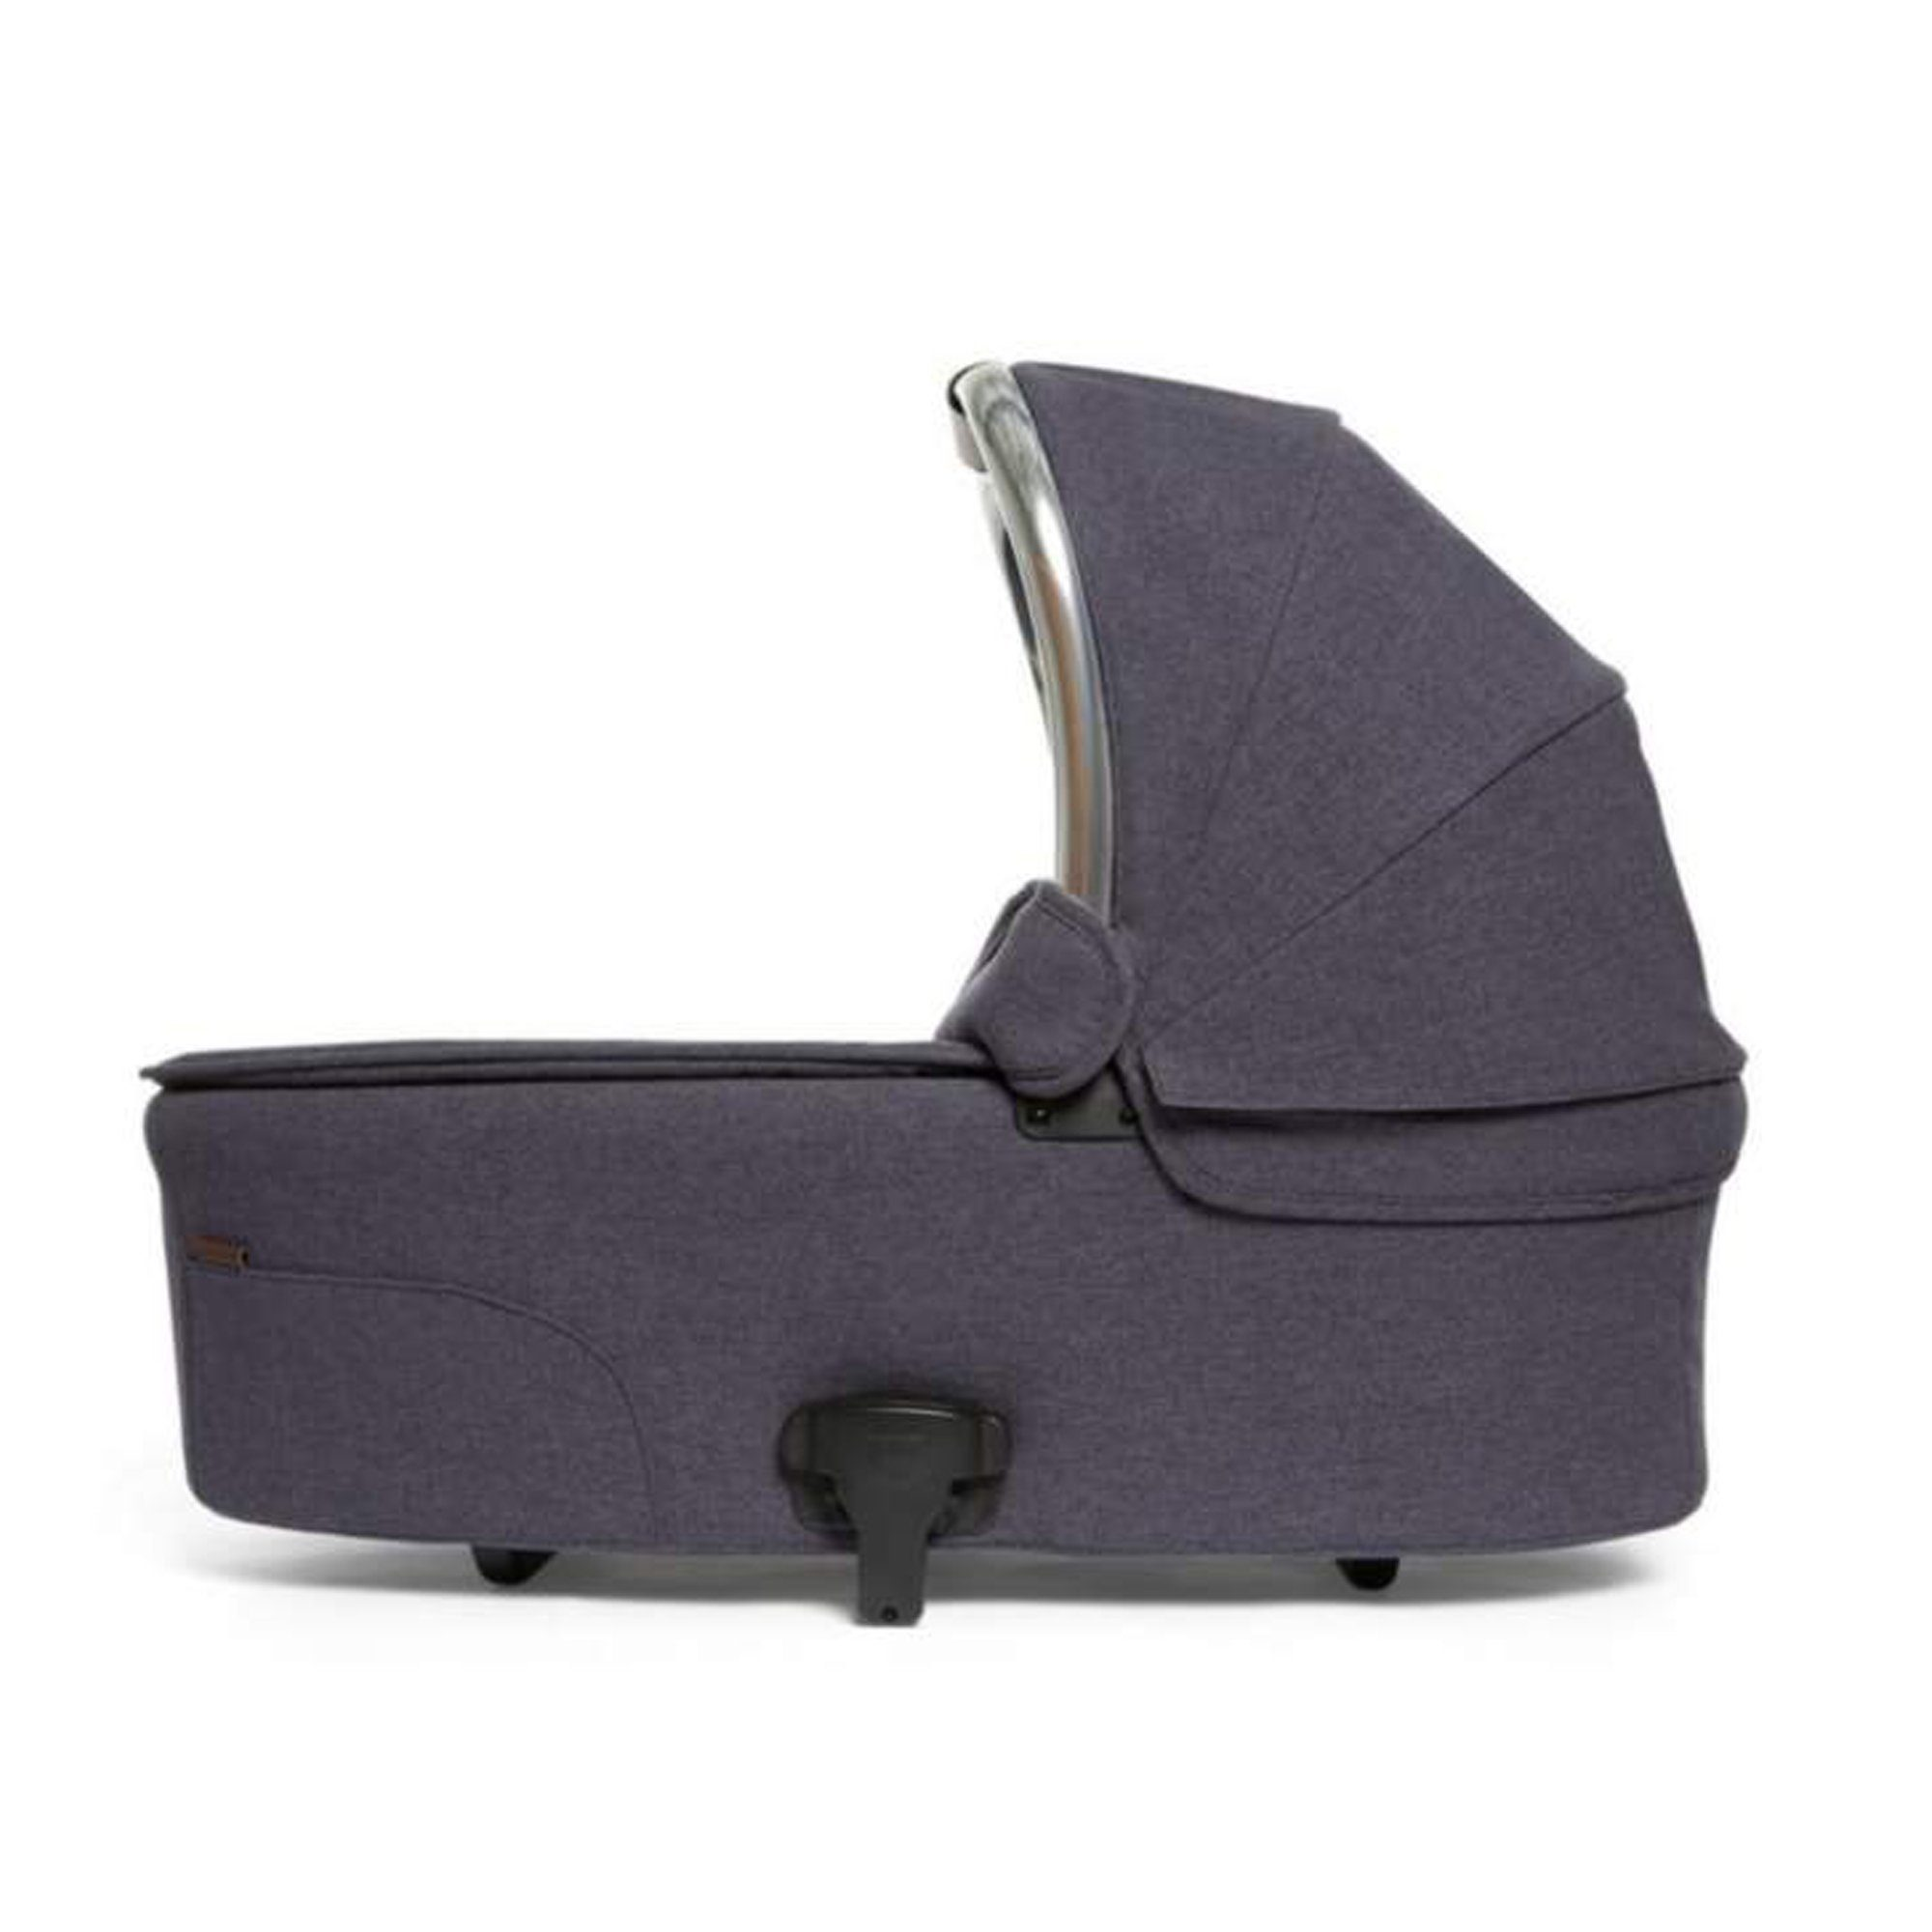 Mamas & Papas Ocarro Travel System - Essentials Kit - Navy - Pushchair Expert